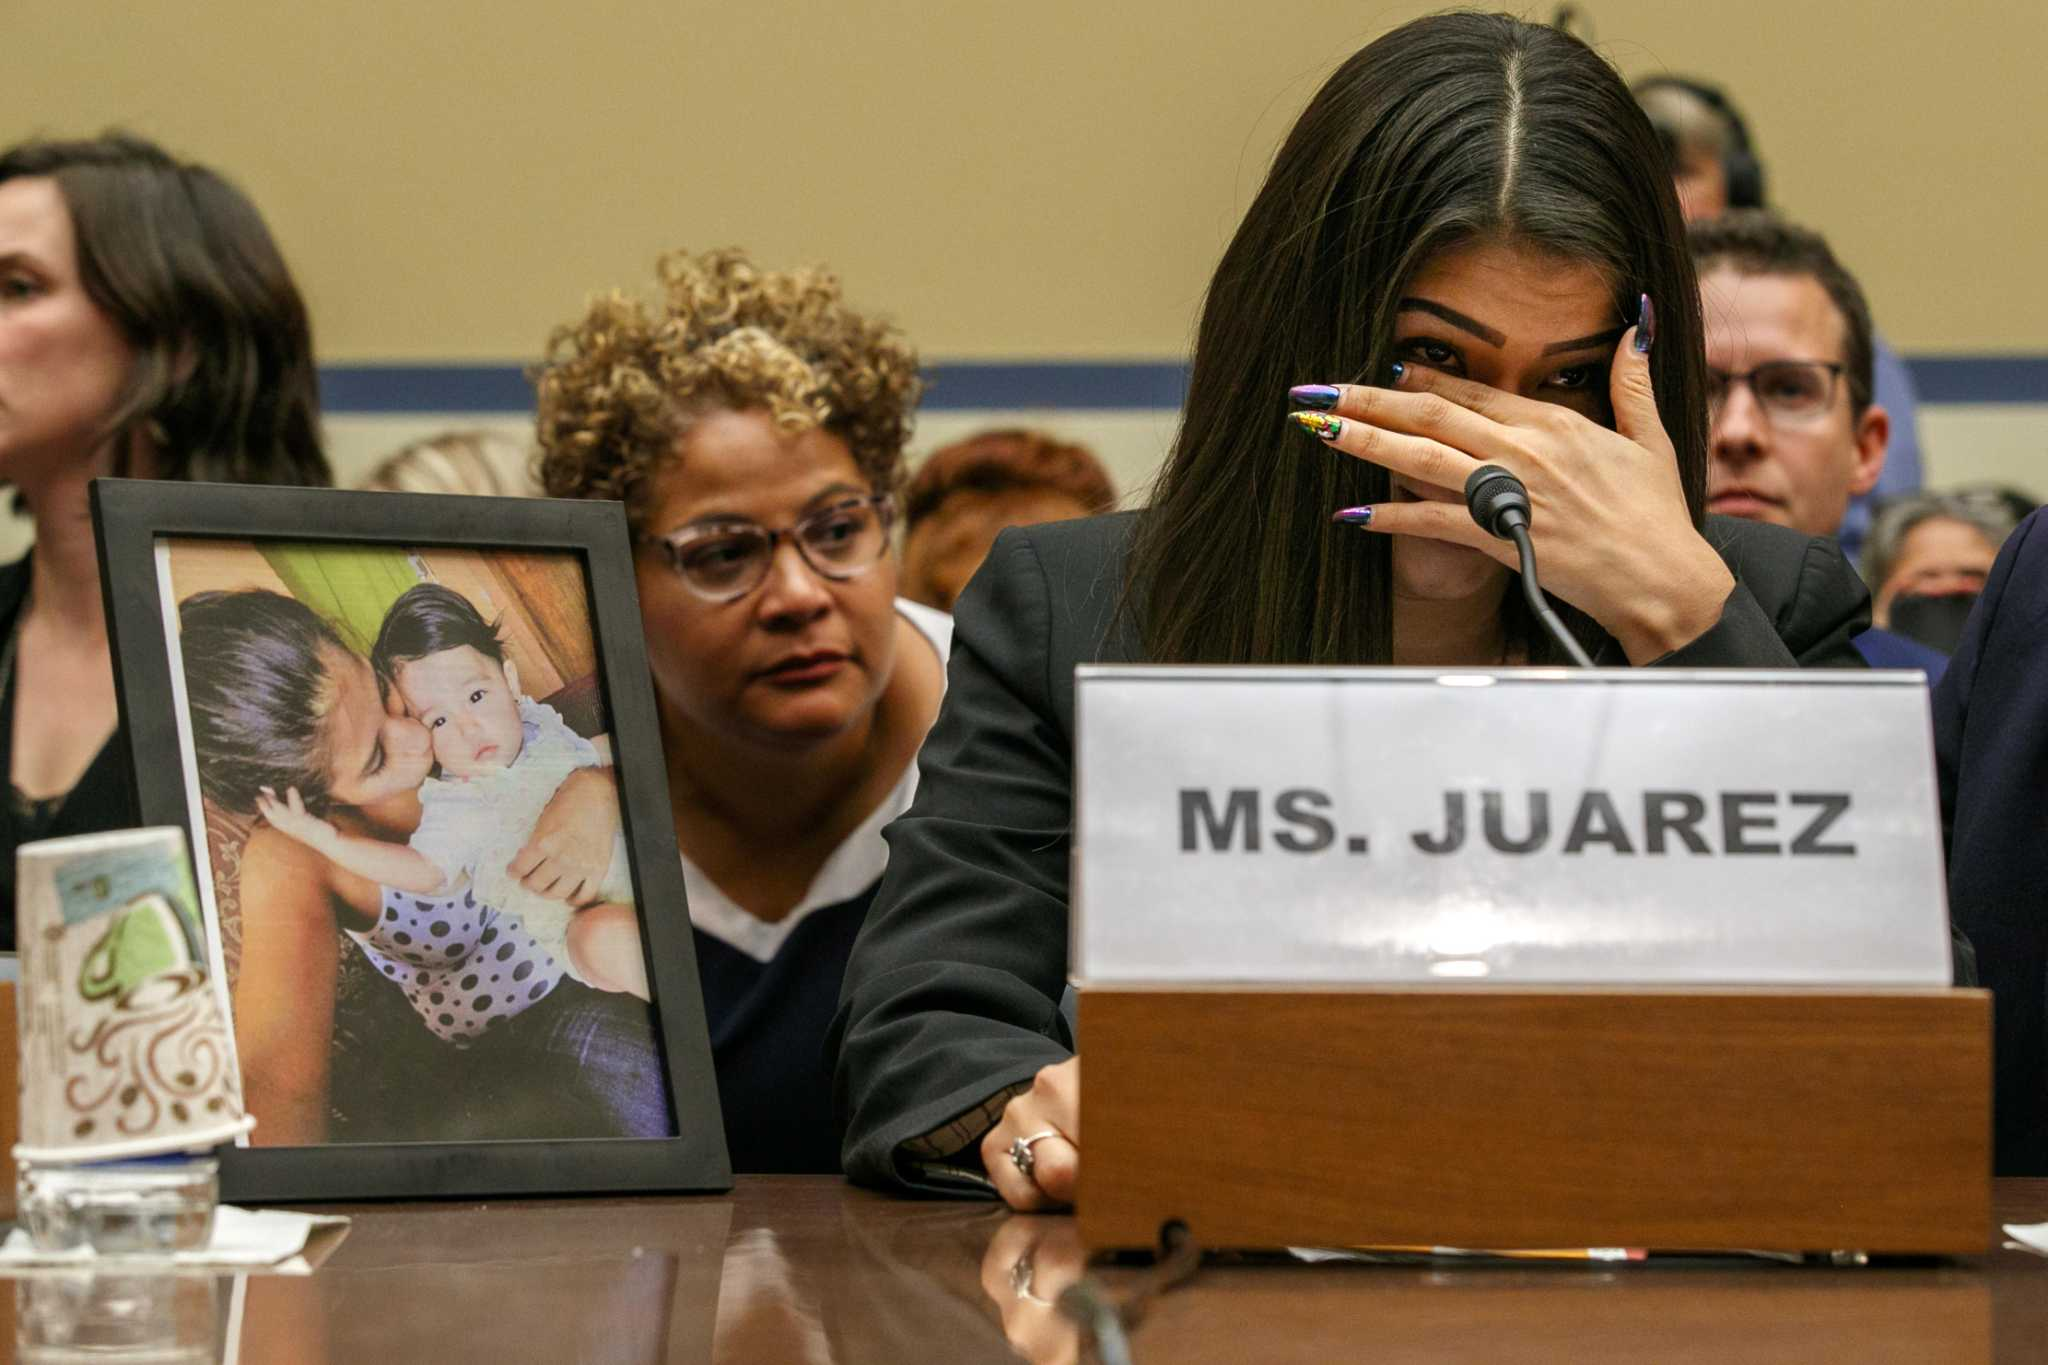 Mother of toddler who died after stay at immigrant jail in Dilley sues for $40 million in San Antonio